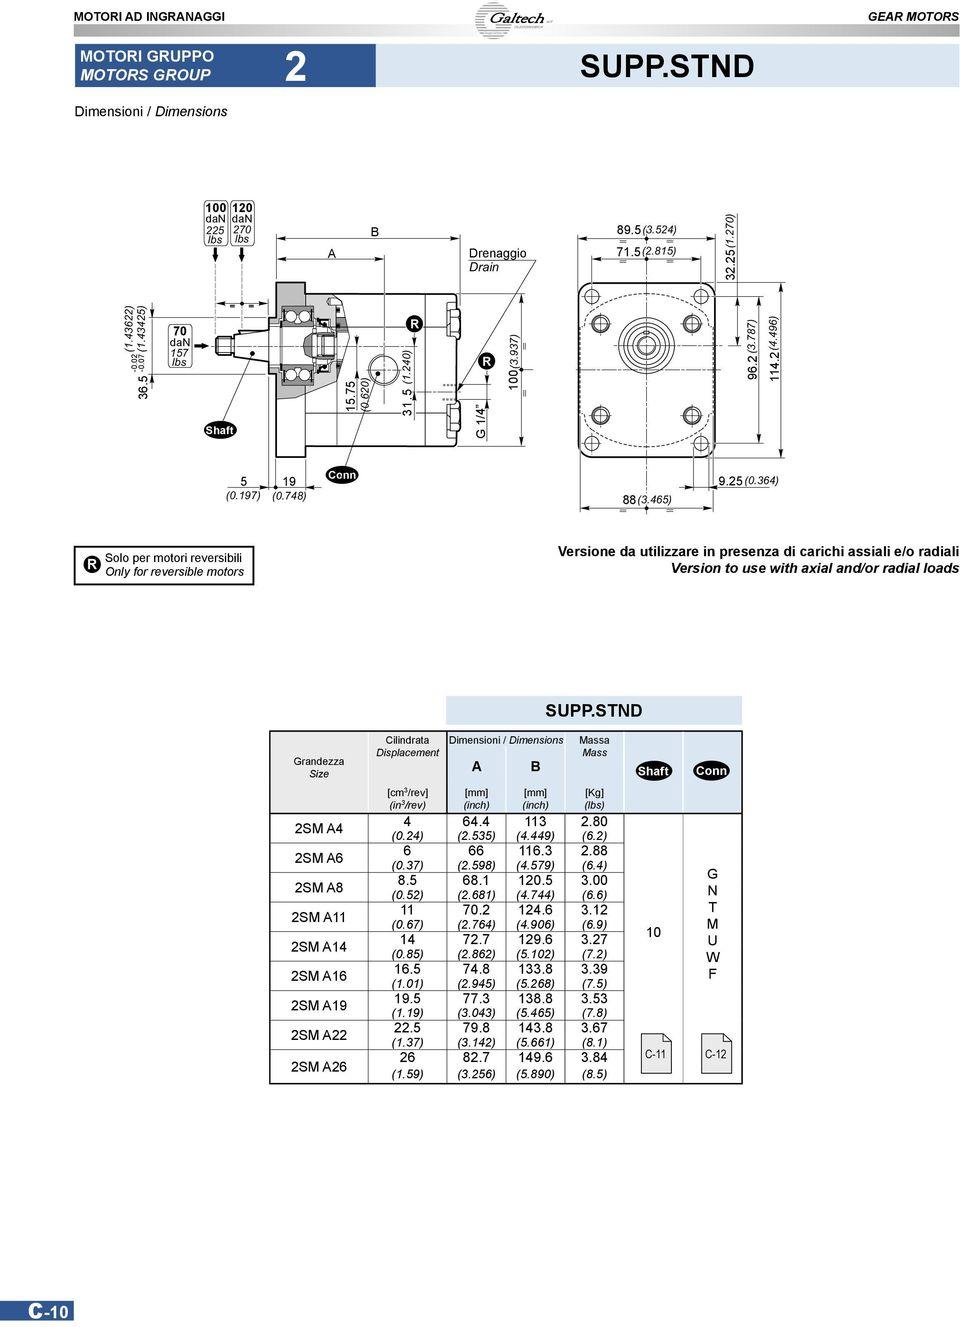 465) Solo per motori reversibili Only for reversible motors Versione da utilizzare in presenza di carichi assiali e/o radiali Version to use with axial and/or radial loads SUPP.